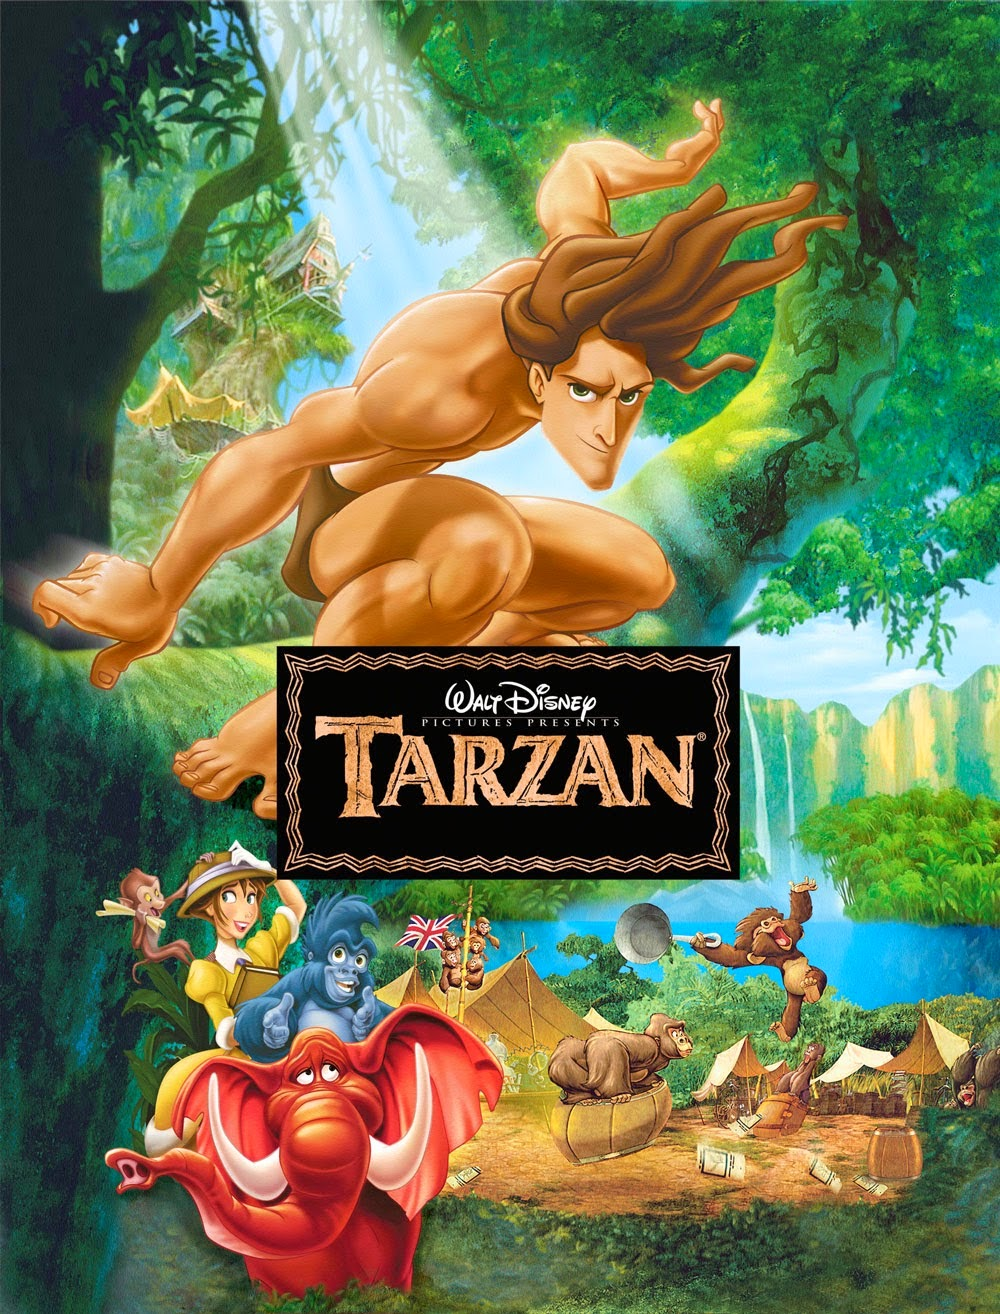 Tarzan-PC-Game-Cover